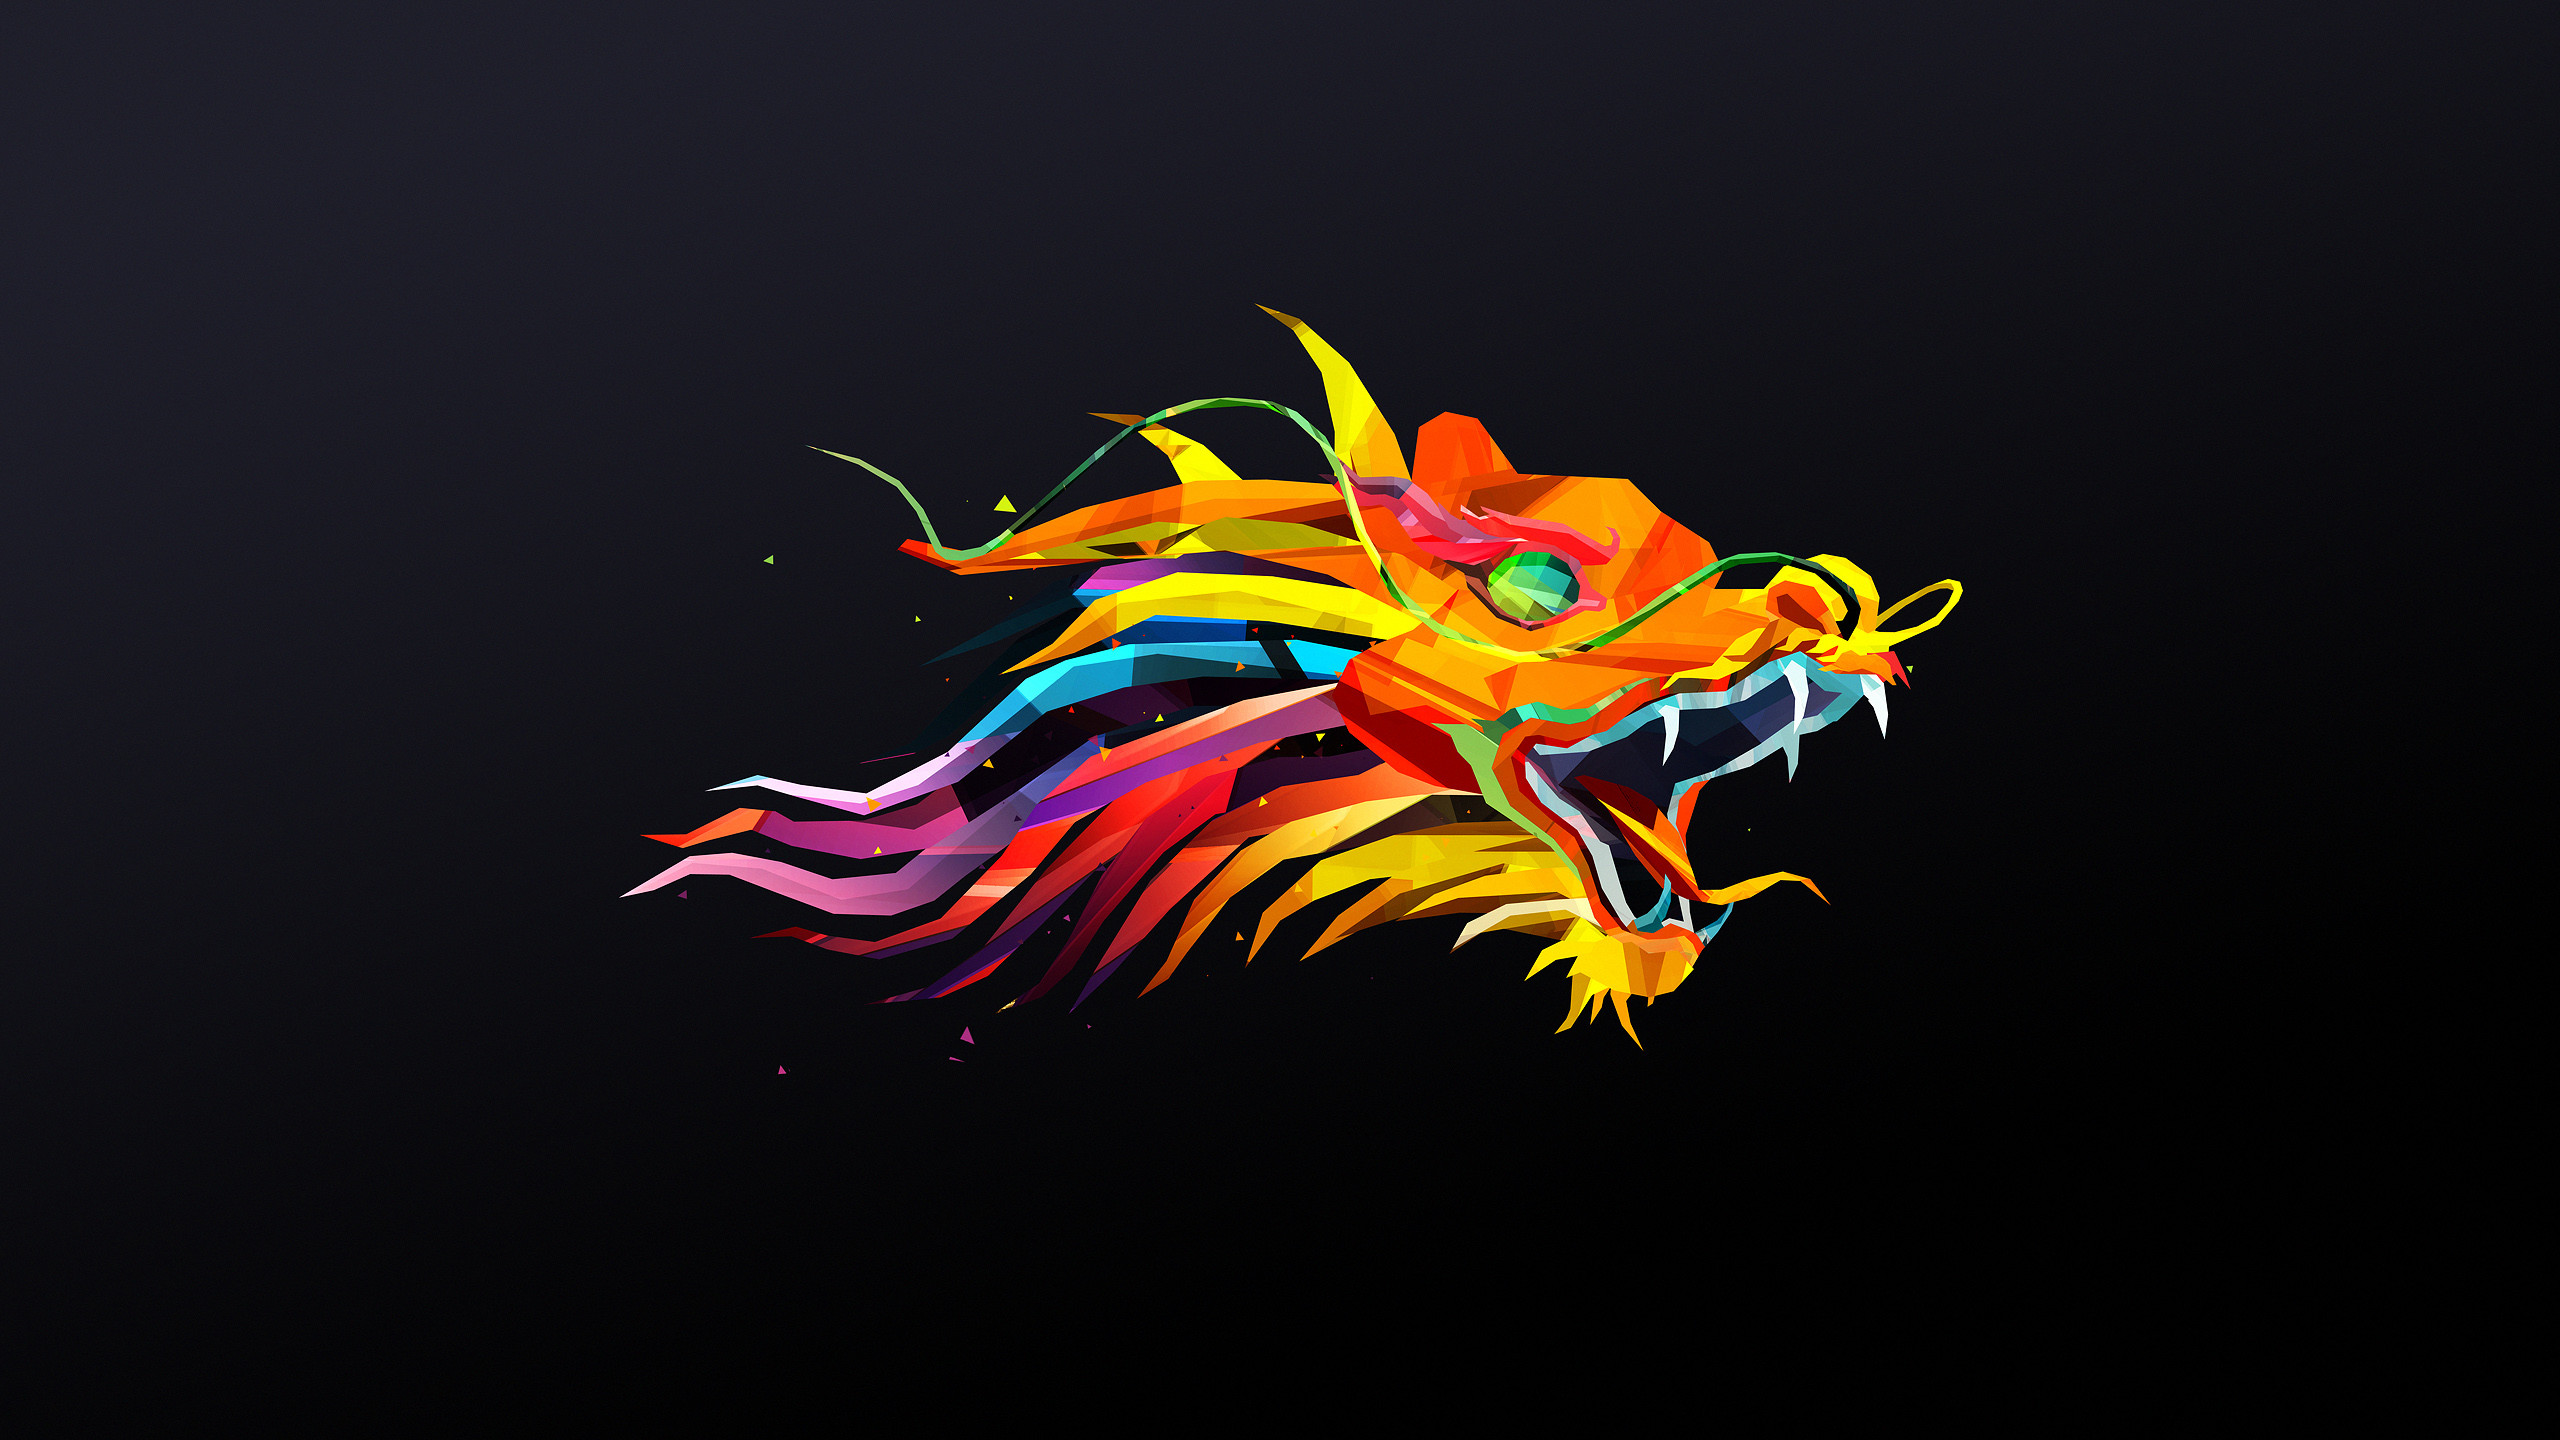 Abstract Gaming Wallpapers 1080P 76+ background pictures